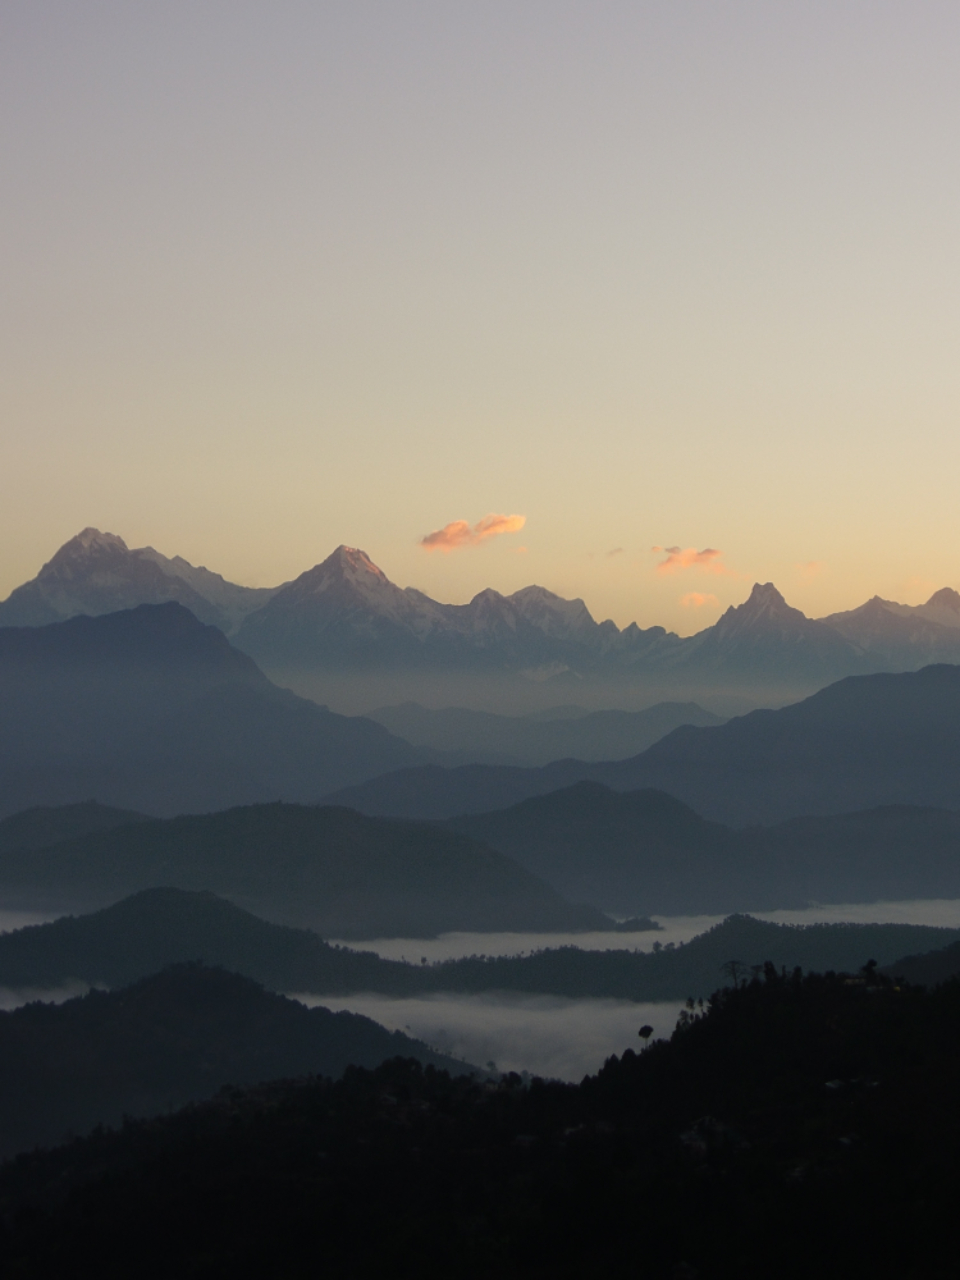 nepal mountain sunrise morning clouds cloudy mist misty nature landscape sky